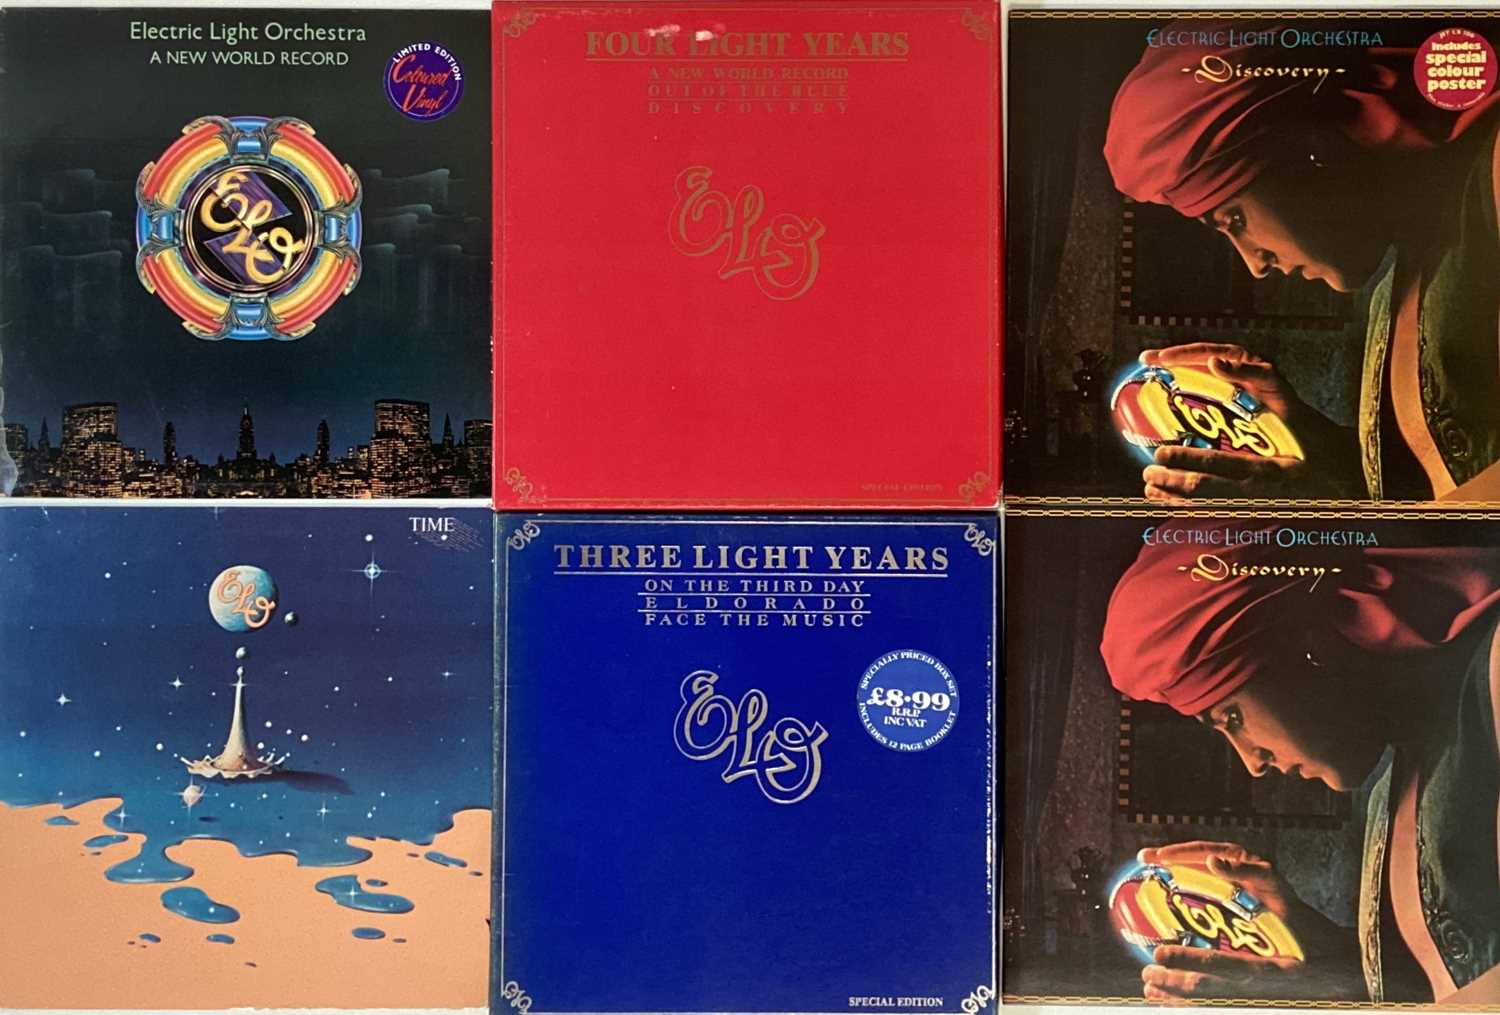 ELO AND RELATED - LPs - Image 2 of 5